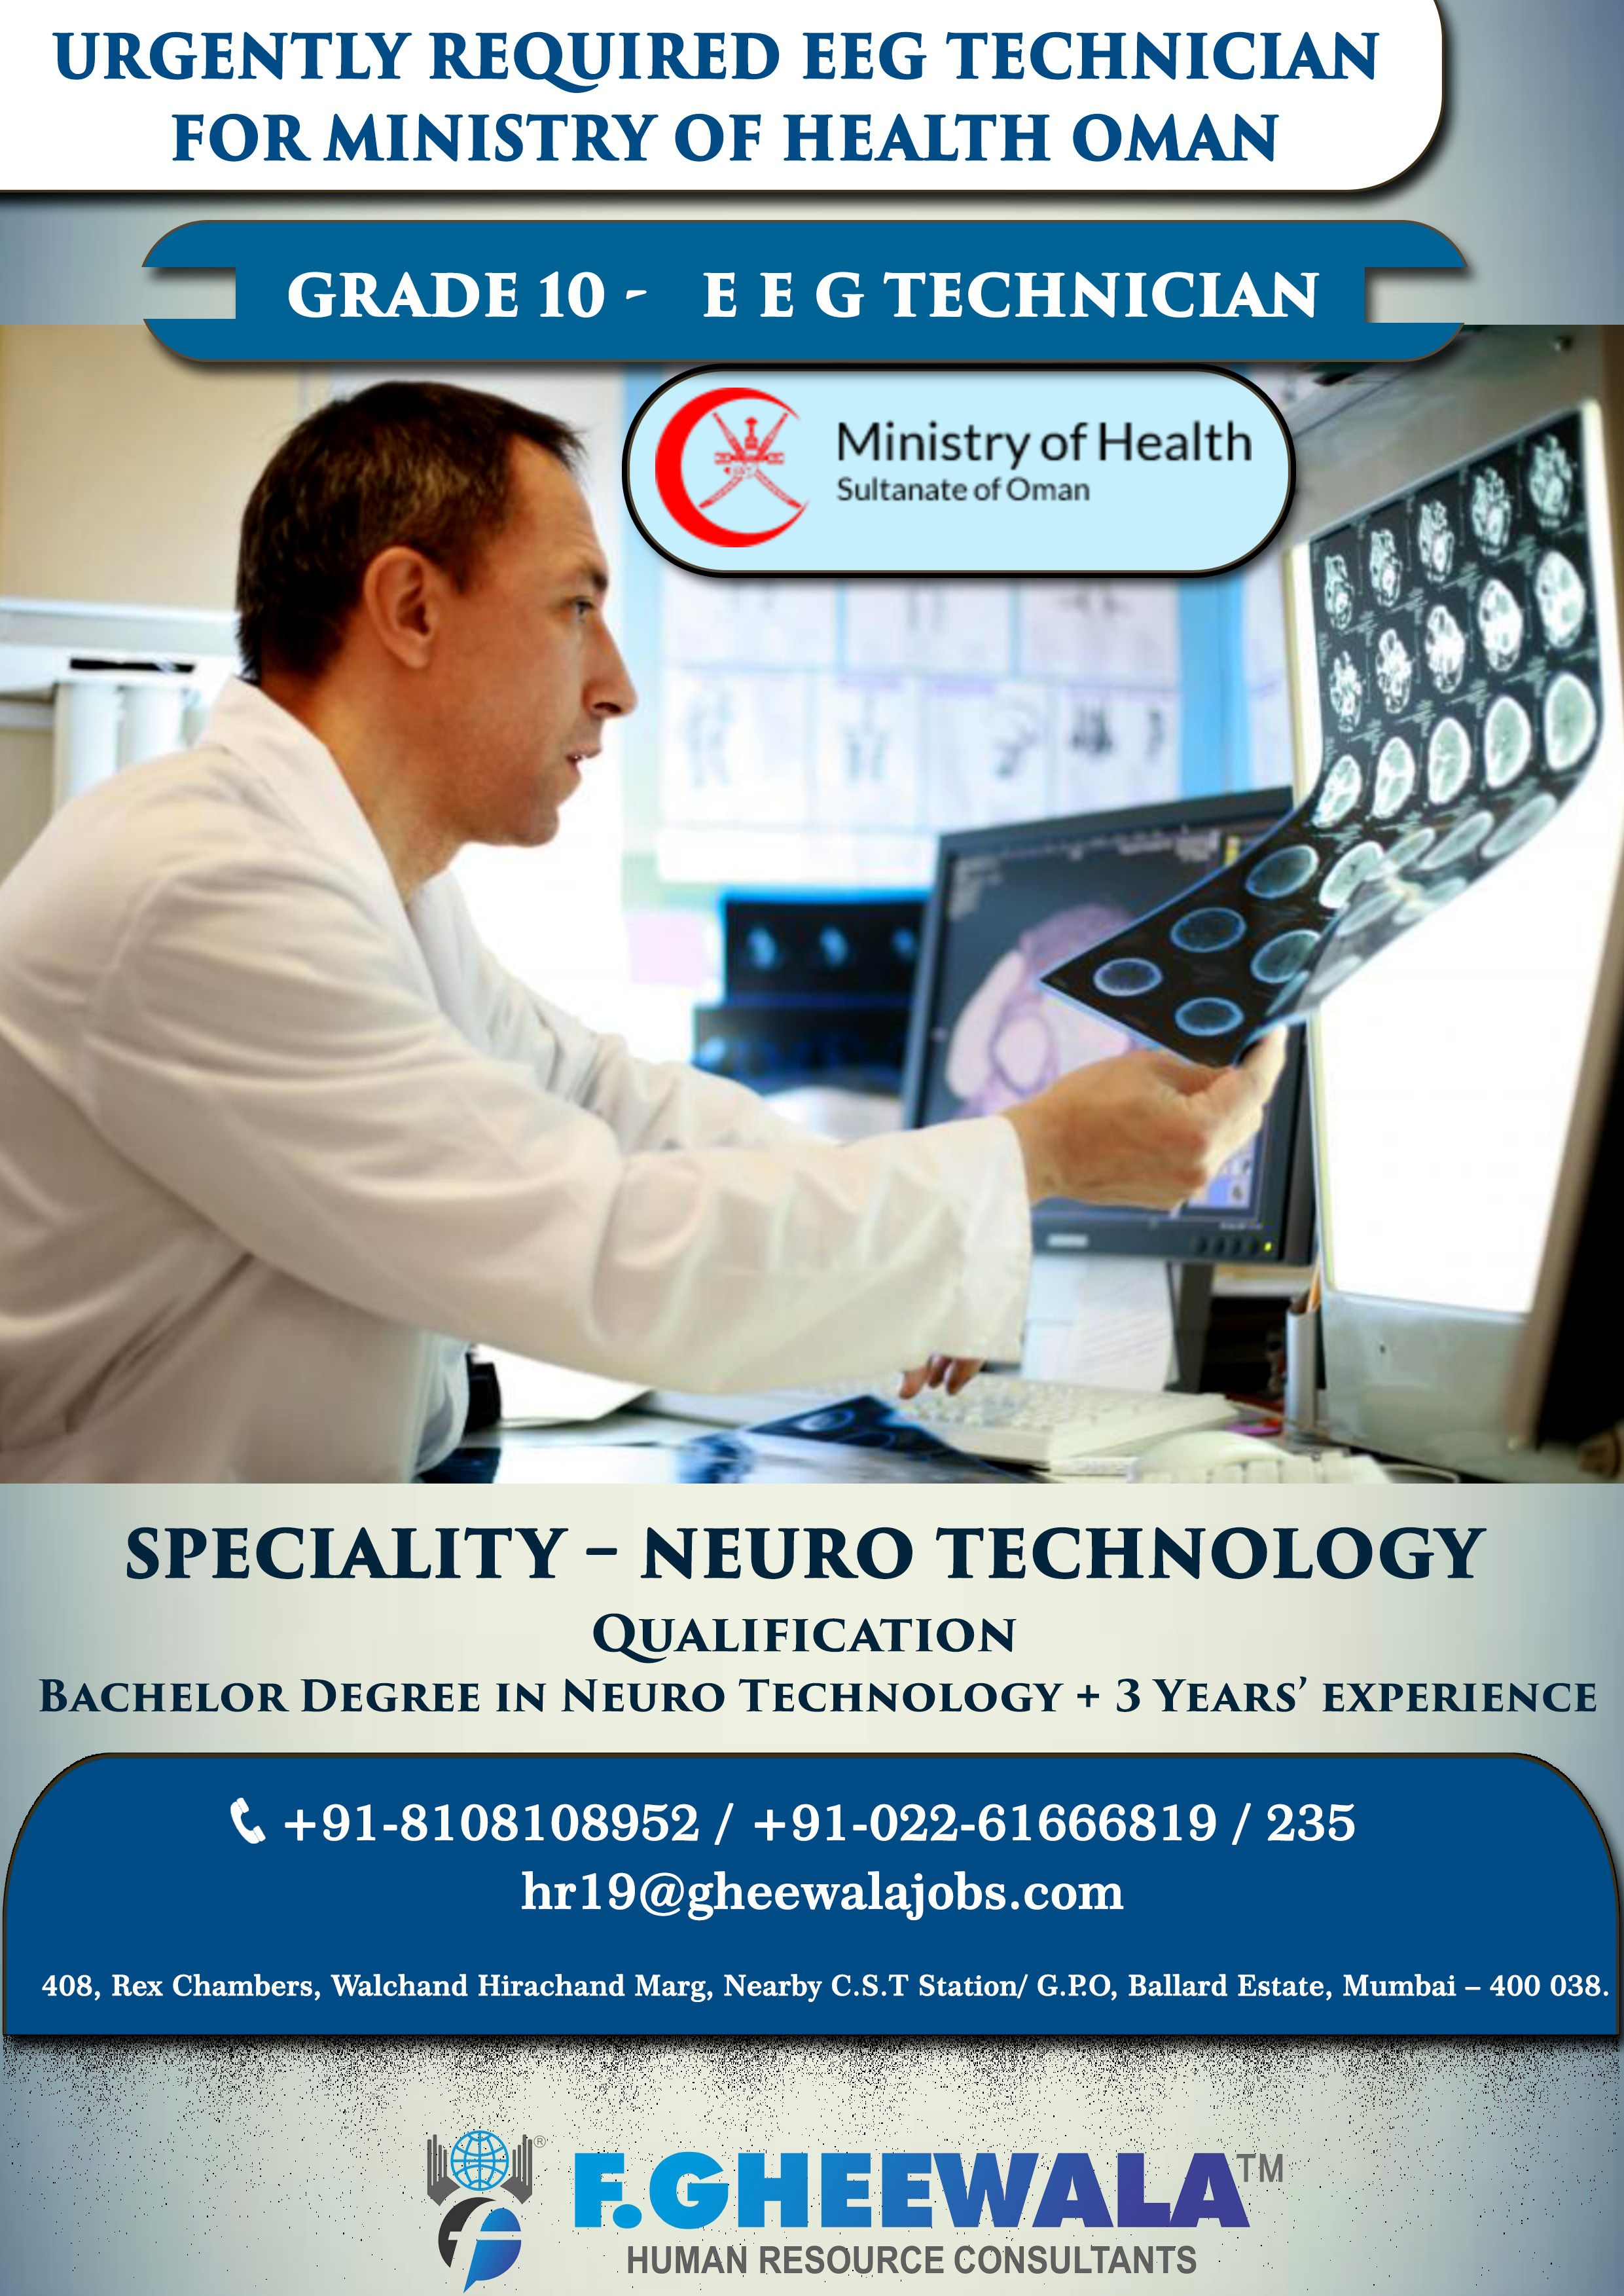 Urgently Required EEG Technician for ministry of health